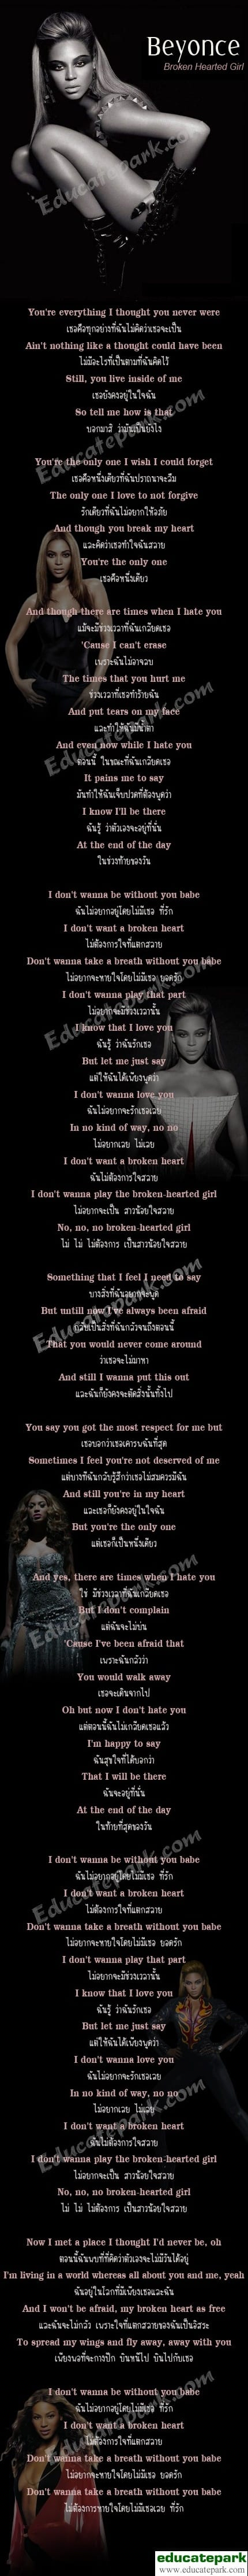 แปลเพลง Broken Hearted Girl - Beyoncé